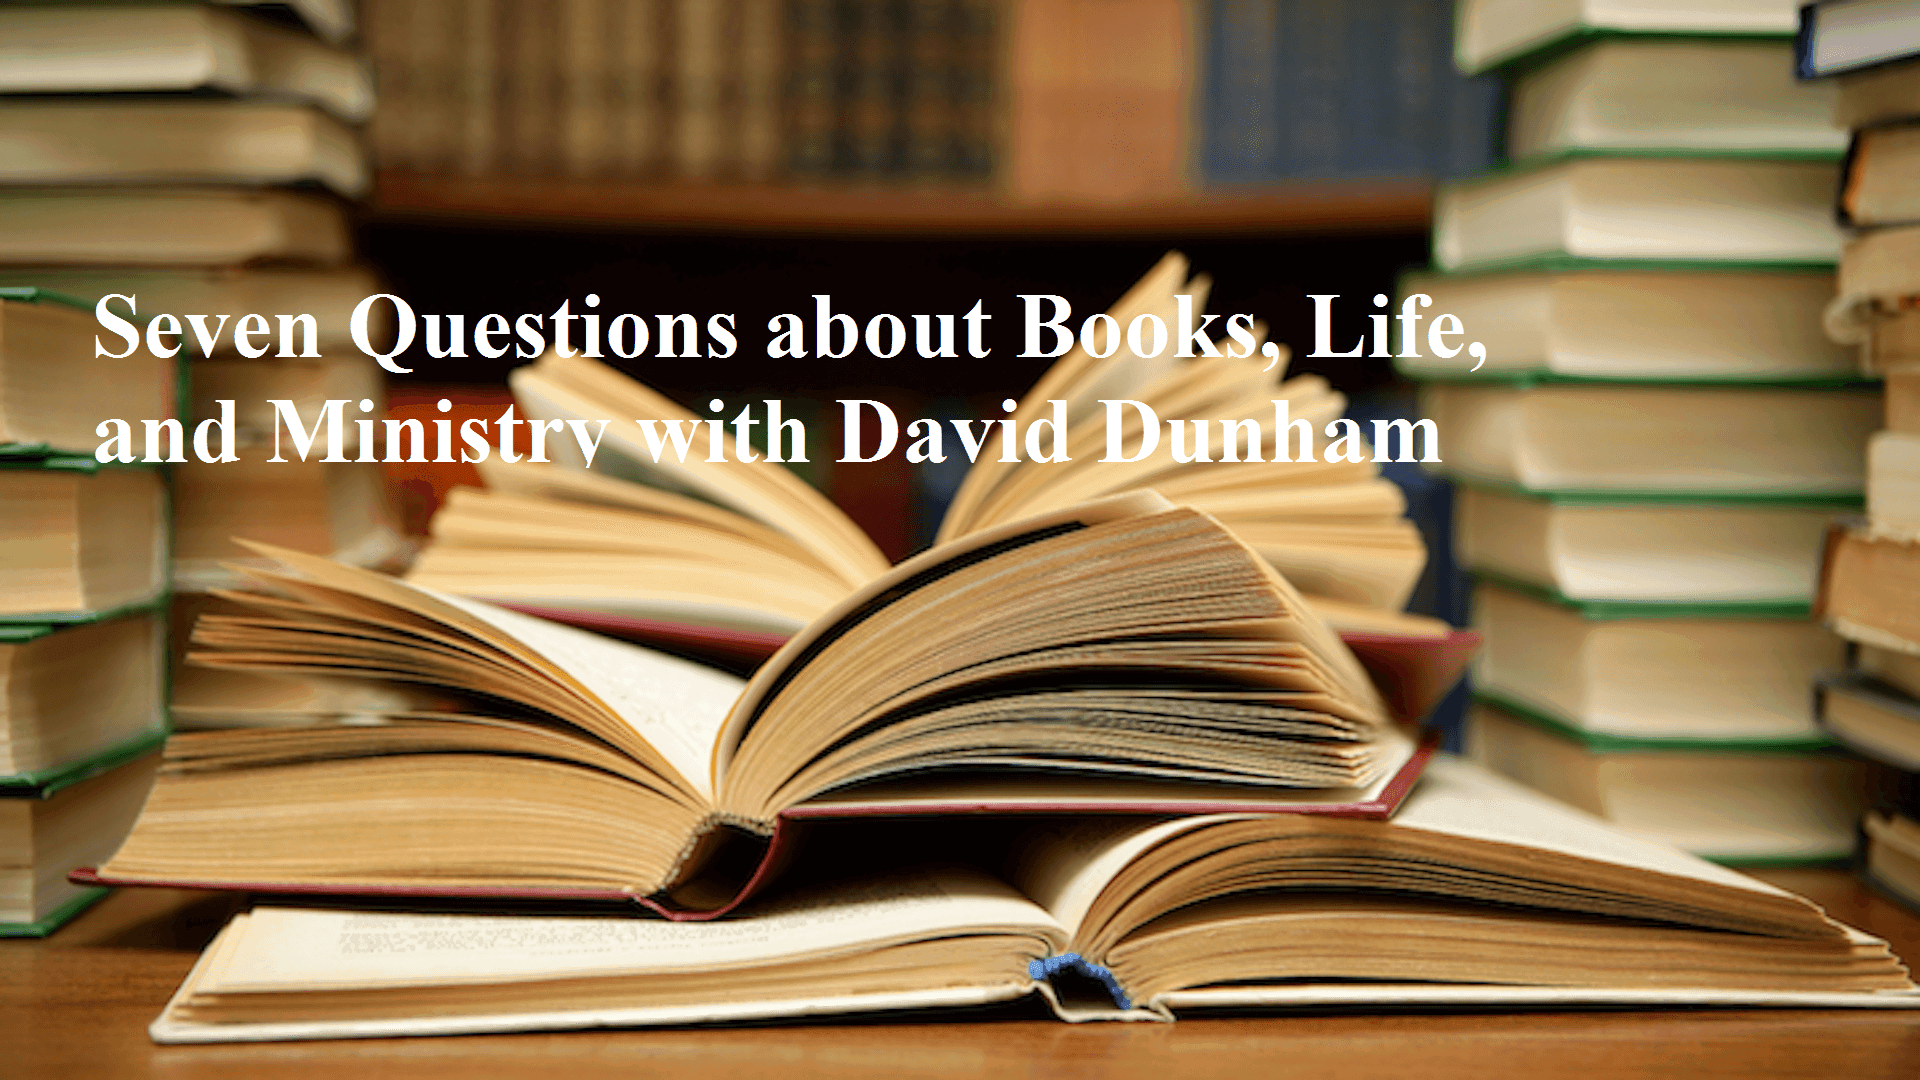 Dunham, Seven Questions about Books, Life, and Ministry with David Dunham, Servants of Grace